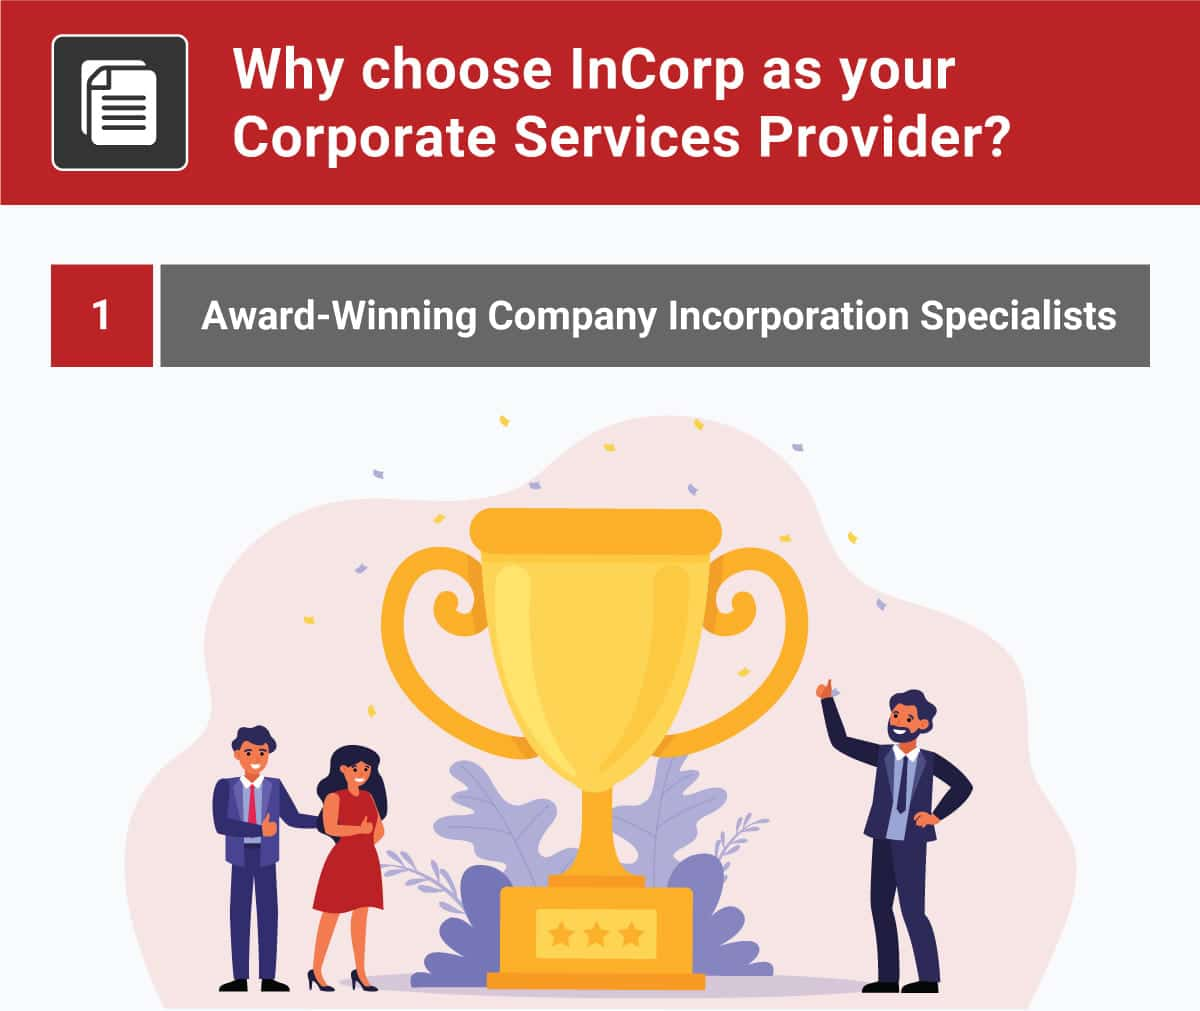 9 reasons InCorp is your go-to Corporate Services Provider